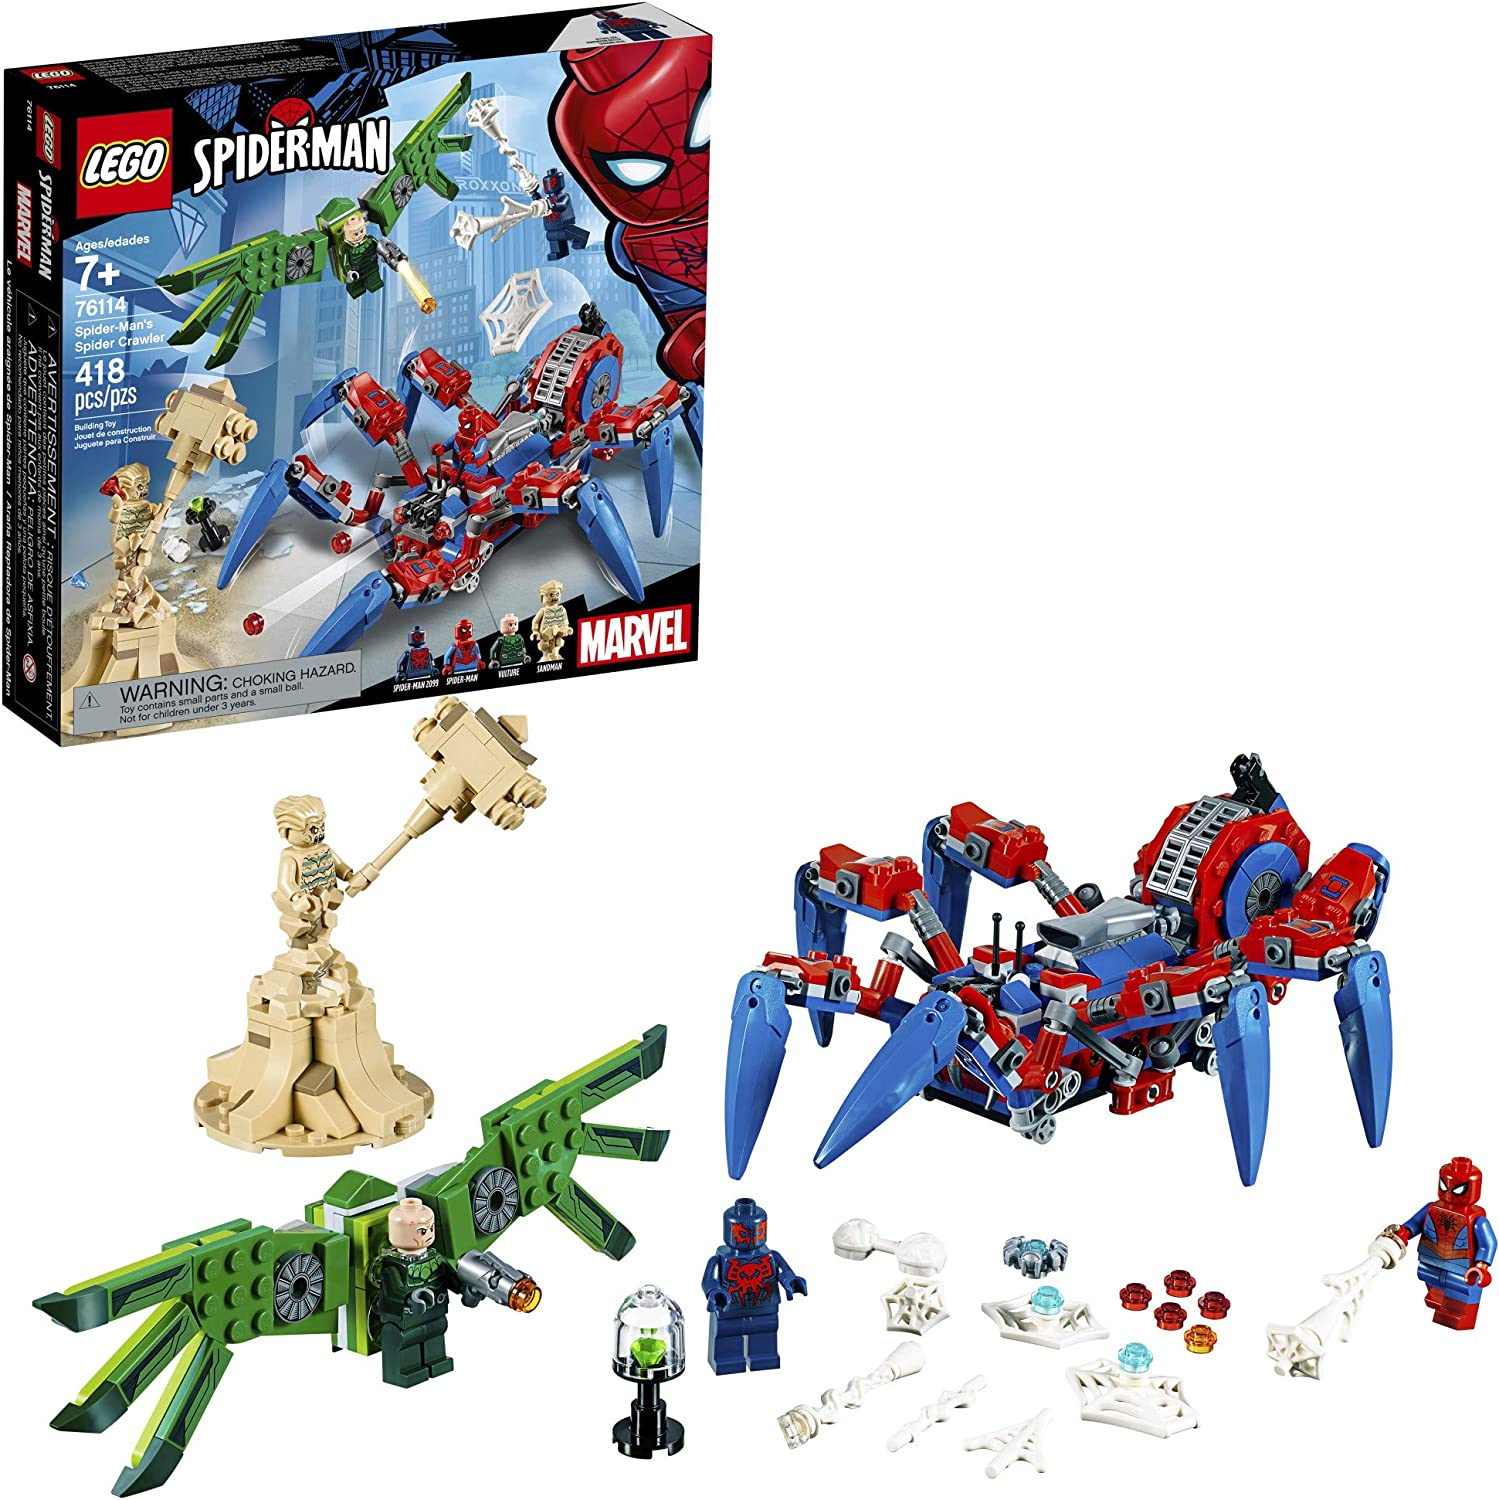 LEGO Marvel Spider-Man: Spider-Man's Spider Crawler 76114 Building Kit (418 Pieces)